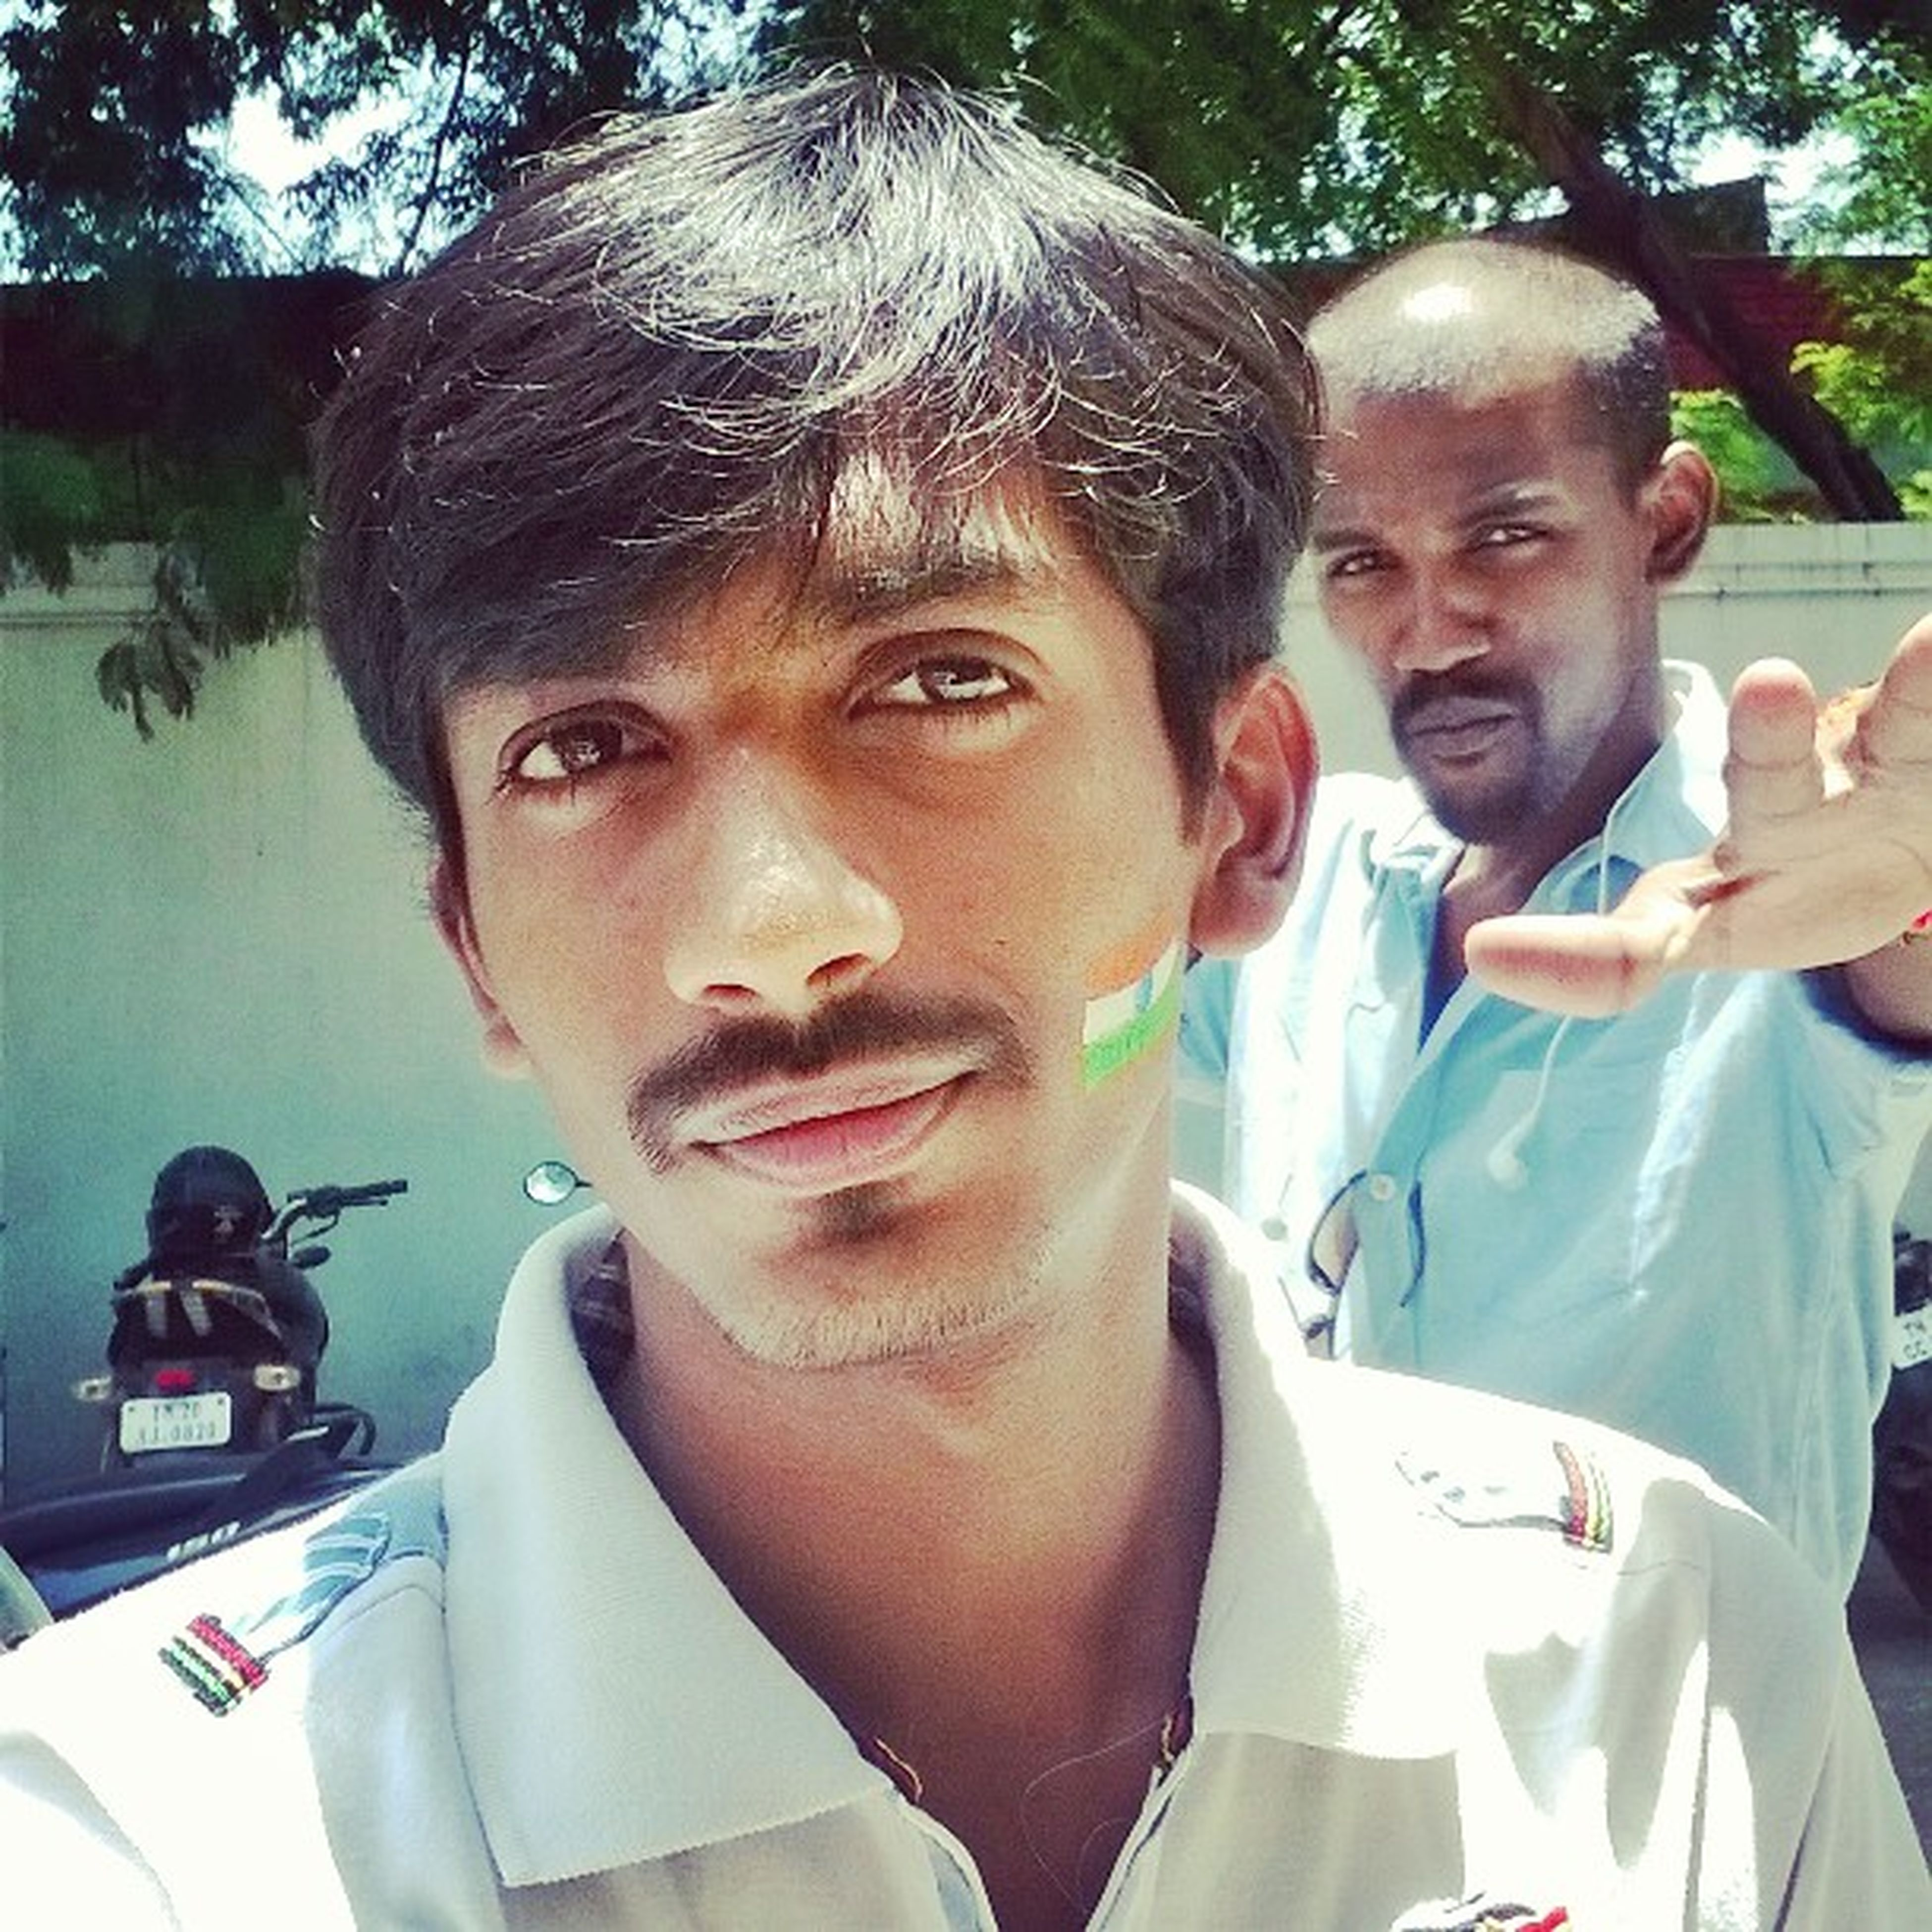 Taken by @natrajsubramanian Selfie wid my buddy Vinoth vino on Independence day celeb's at my offiz parkin lot Independenceday Aug15